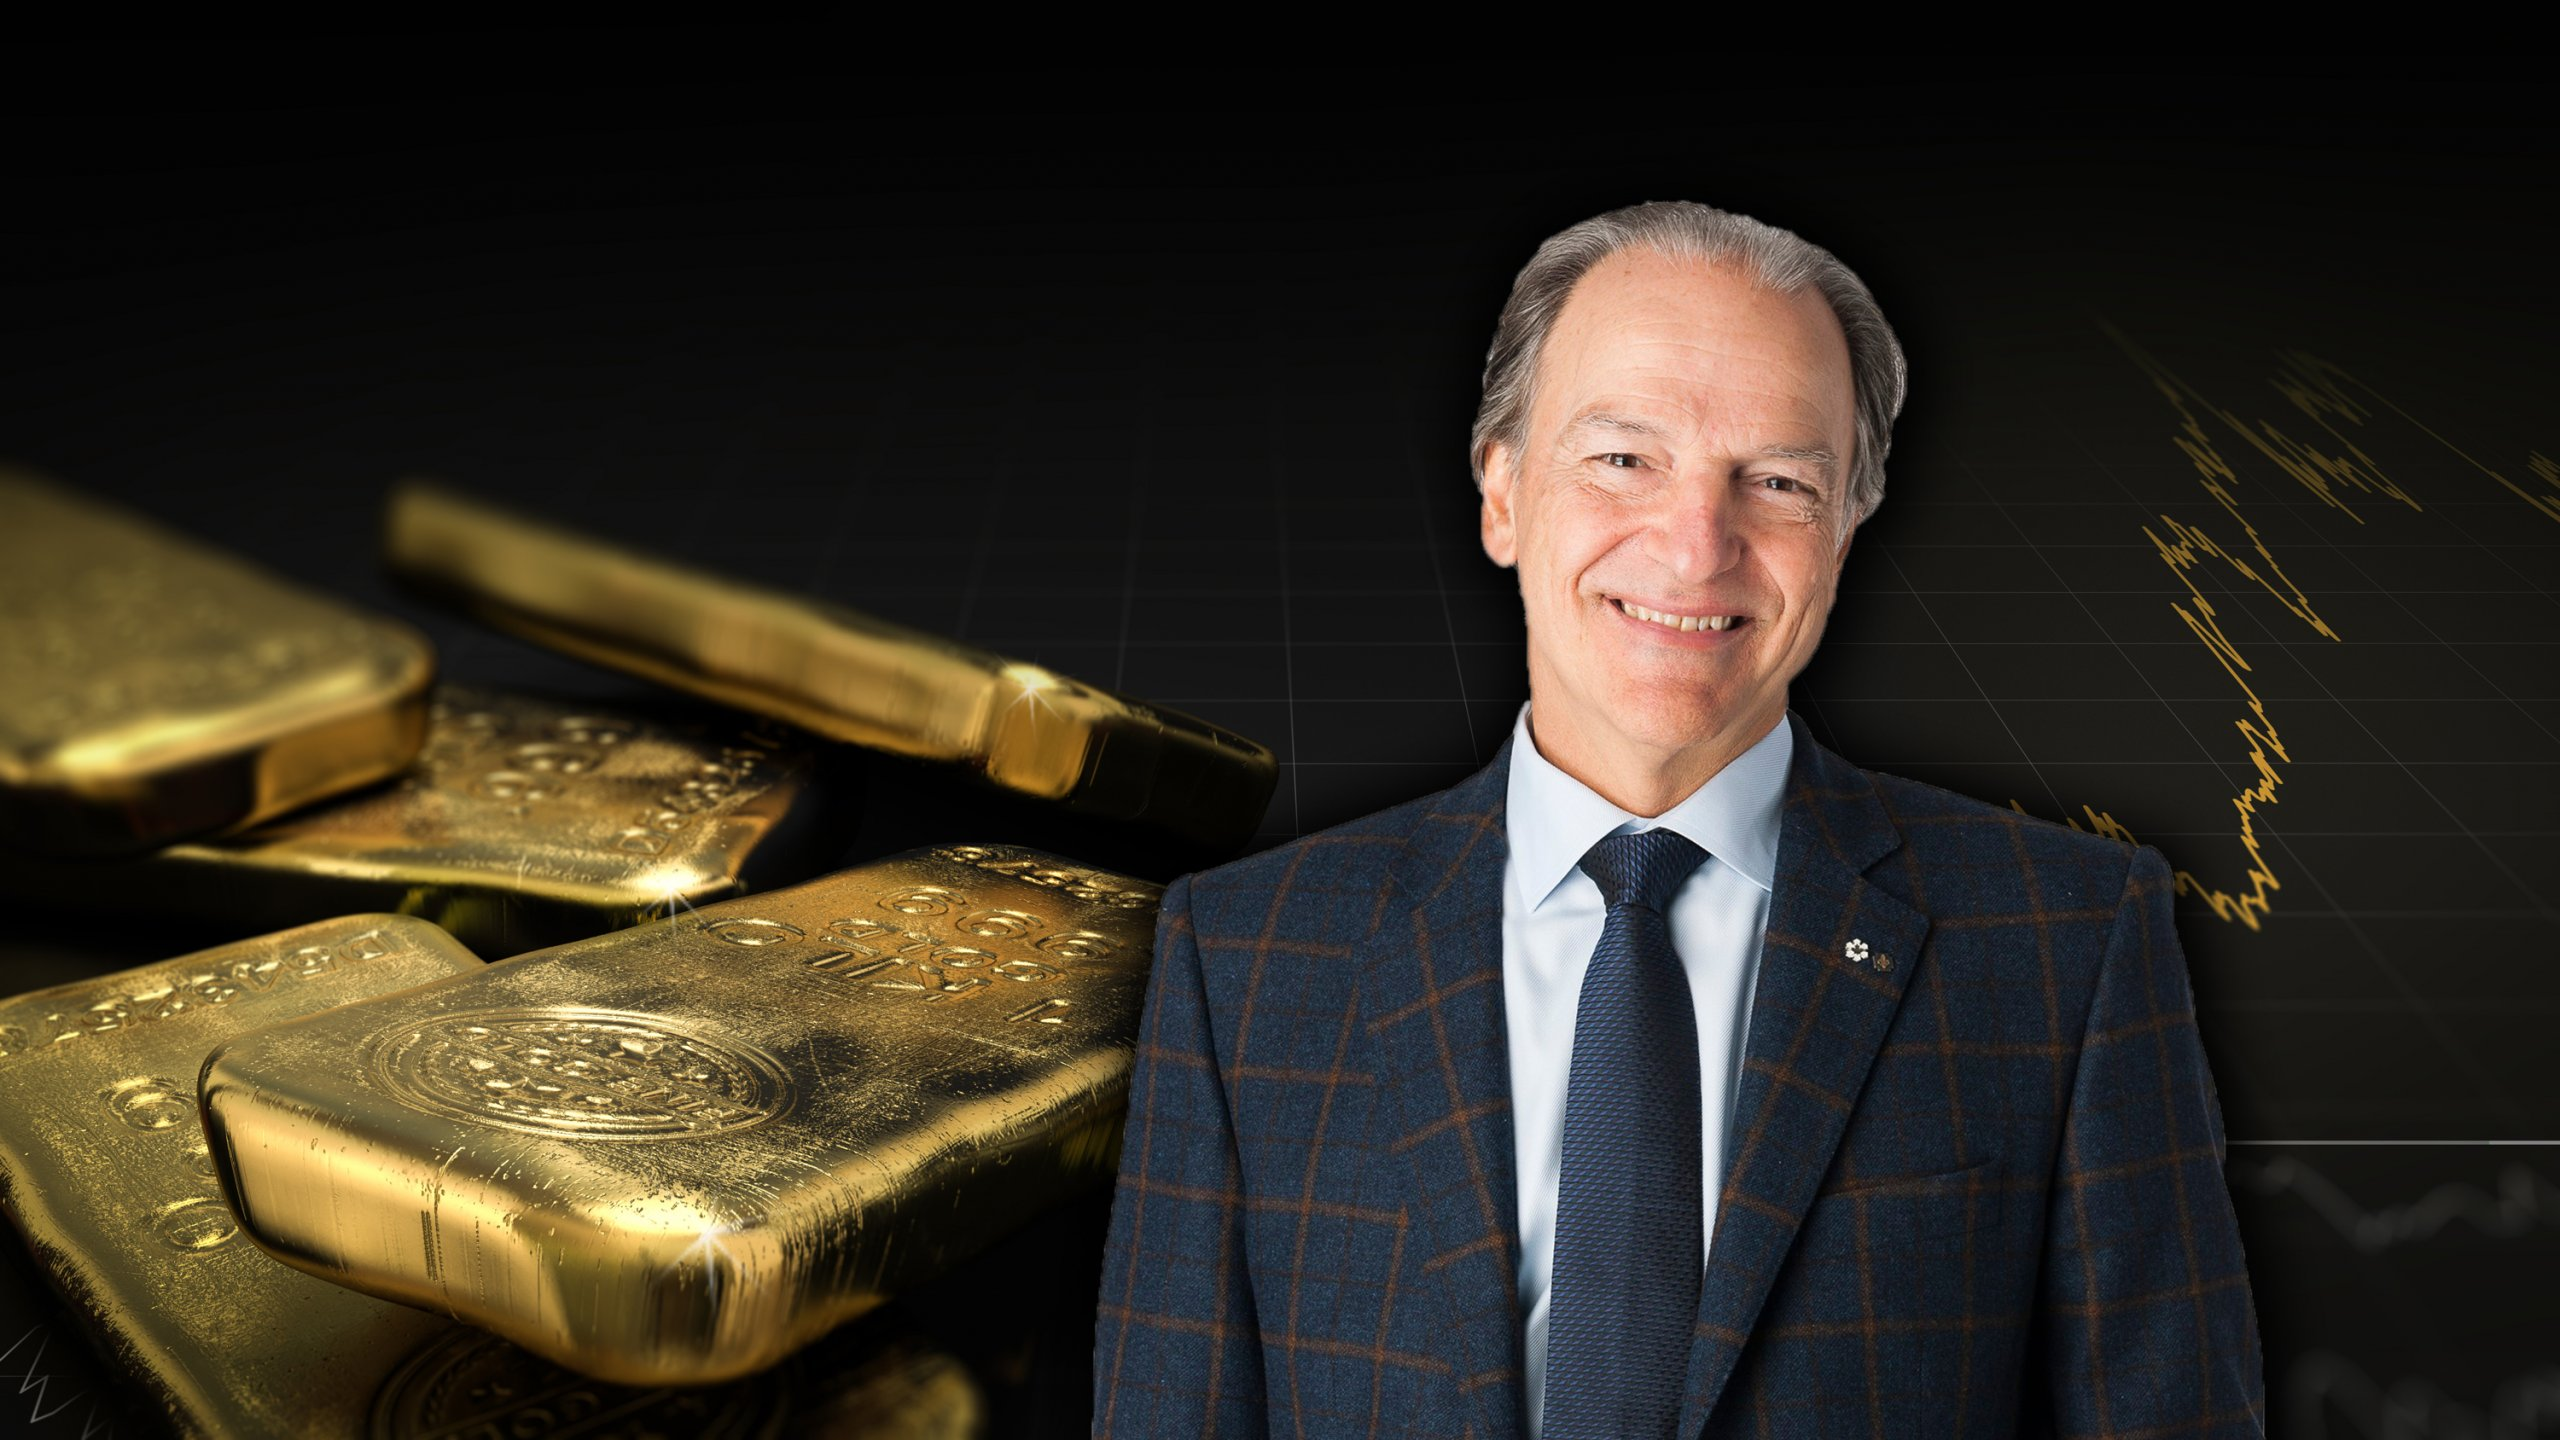 Dr pierre lassonde investments mari puoskari guggenheim investments